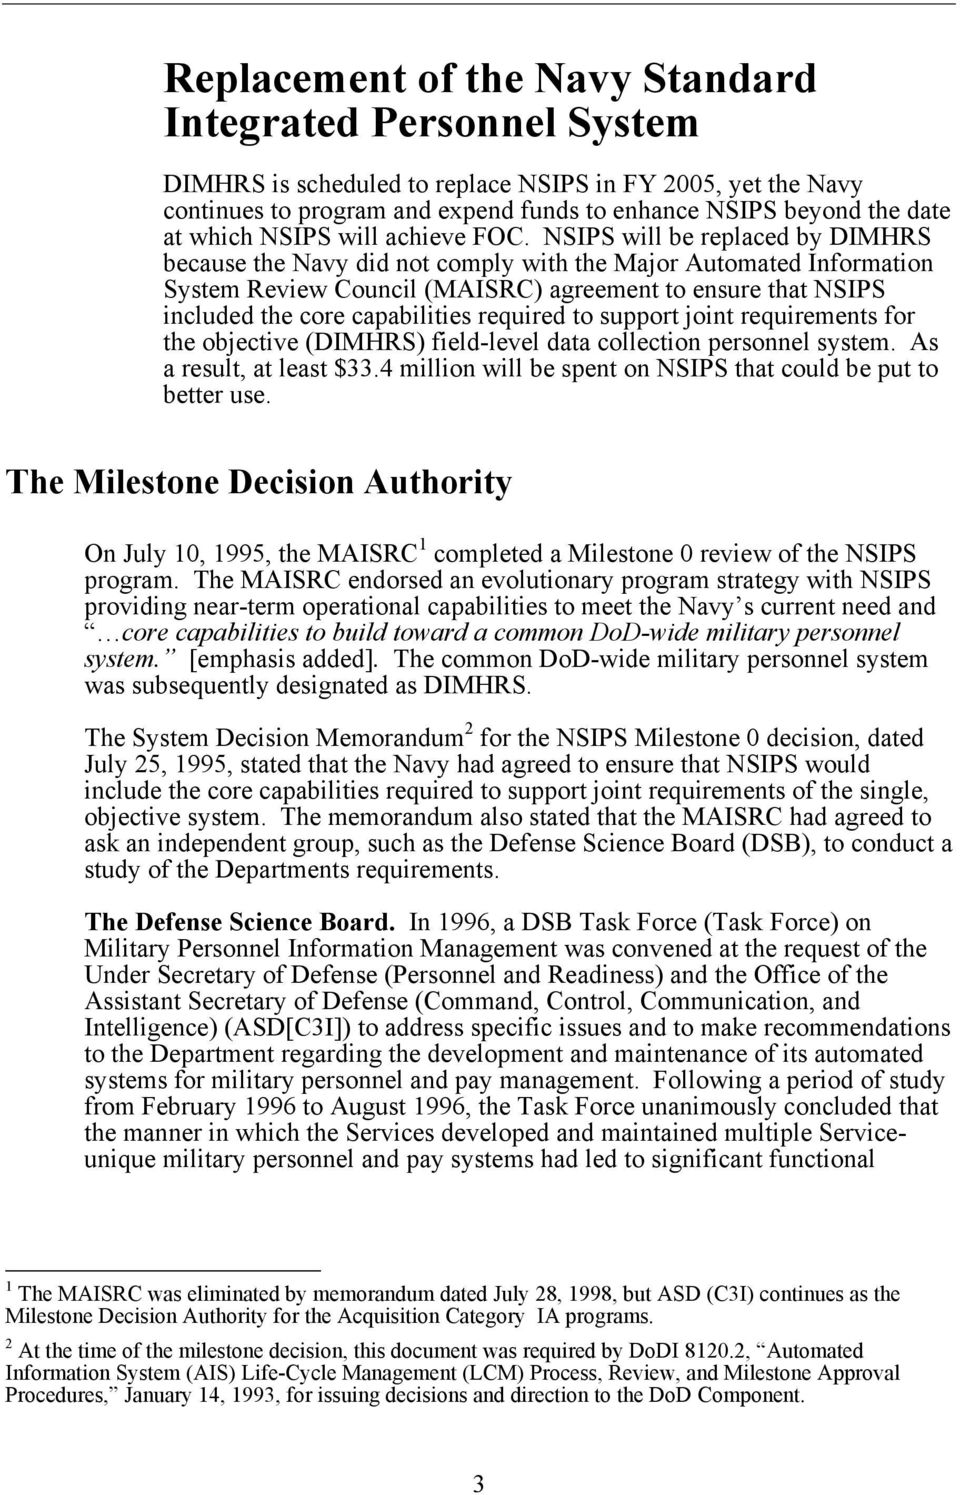 NSIPS will be replaced by DIMHRS because the Navy did not comply with the Major Automated Information System Review Council (MAISRC) agreement to ensure that NSIPS included the core capabilities